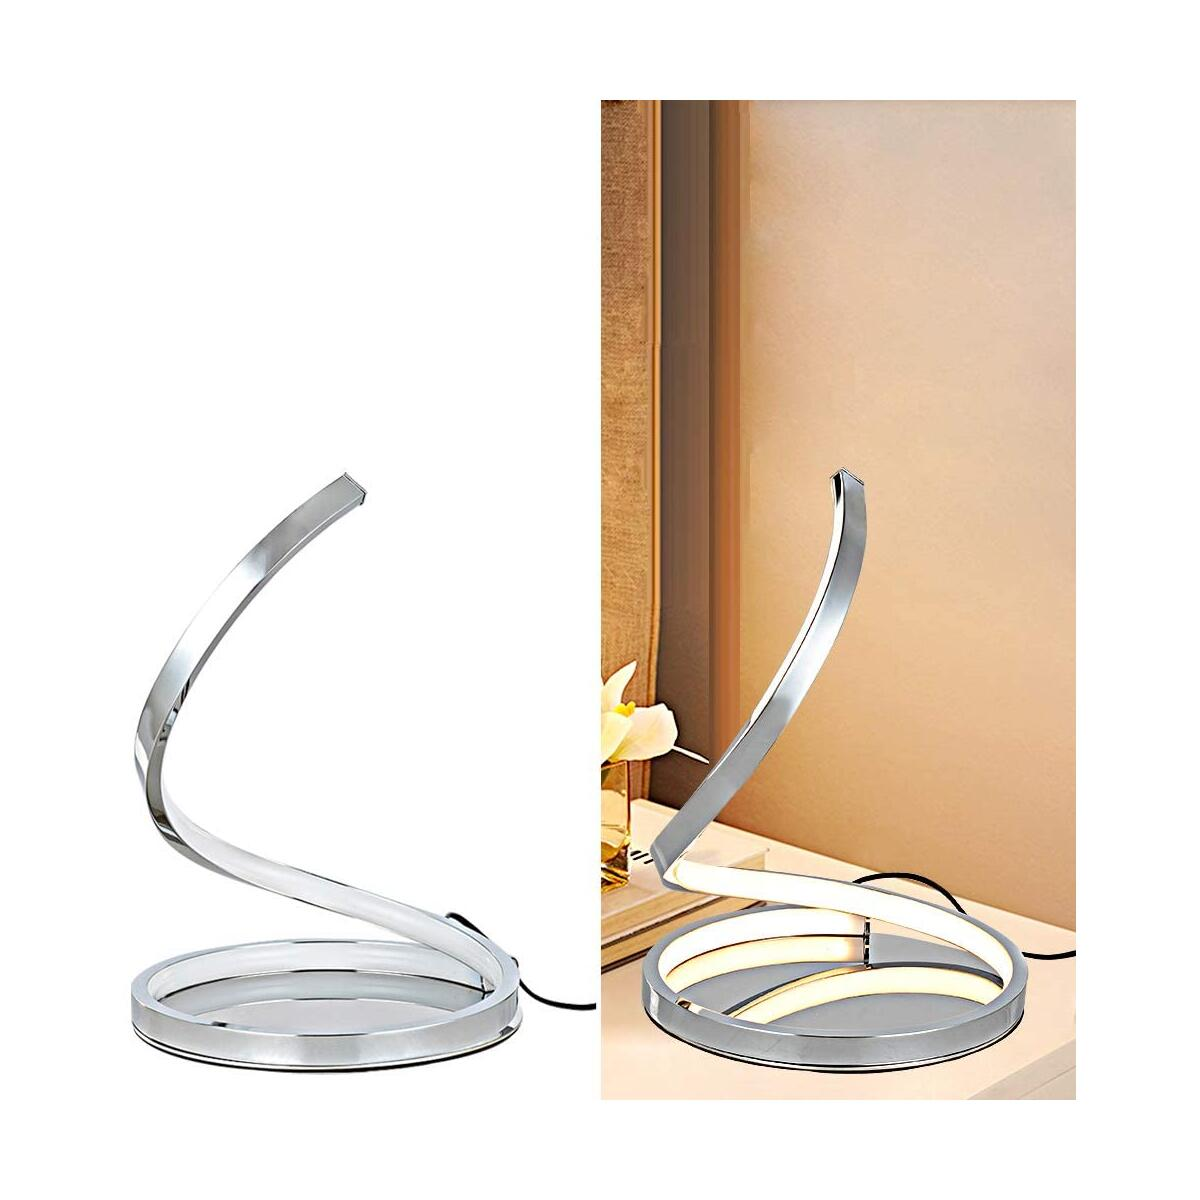 KARMIQI Dimmable LED Table Lamp for Bedroom, 7W Touch Control Table Lamp, Modern Spiral Bedside Nightstand Lamp for Living Room